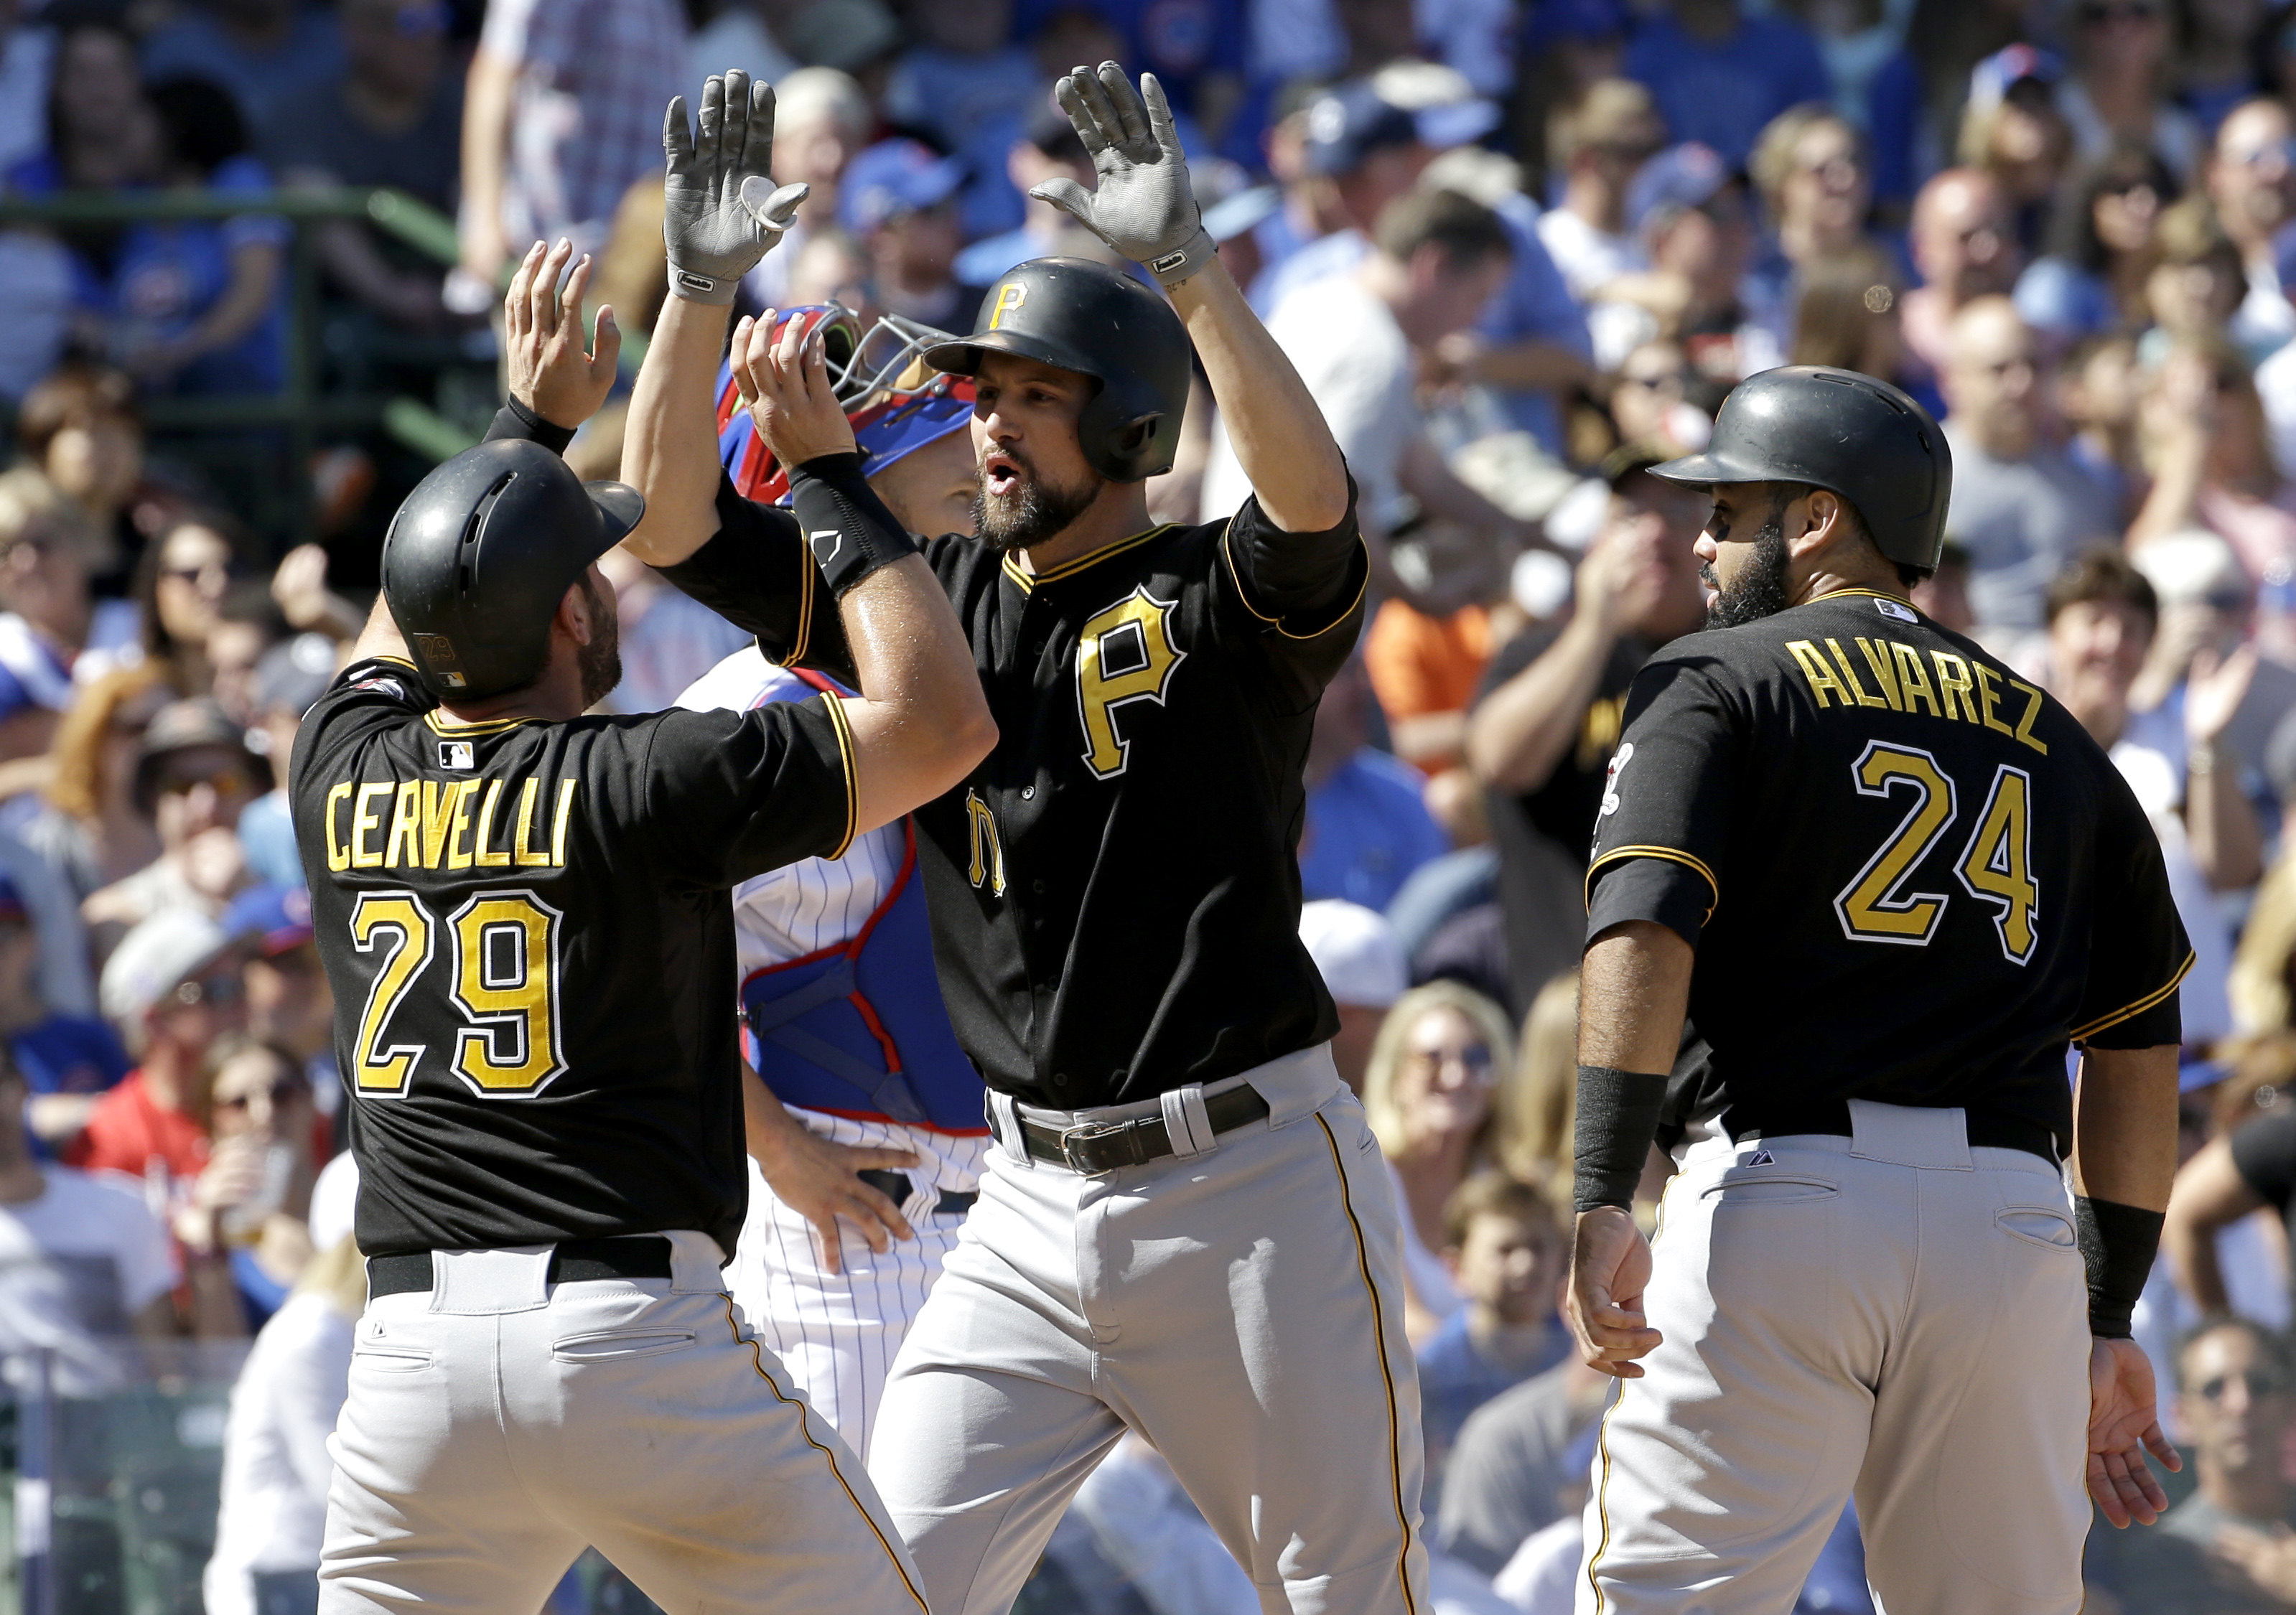 Pittsburgh Pirates' Jordy Mercer, center, celebrates with Francisco Cervelli, left, and Pedro Alvarez after hitting a three-run home run during the fifth inning of a baseball game against the Chicago Cubs, Saturday, Sept. 26, 2015, in Chicago. (AP Photo/N